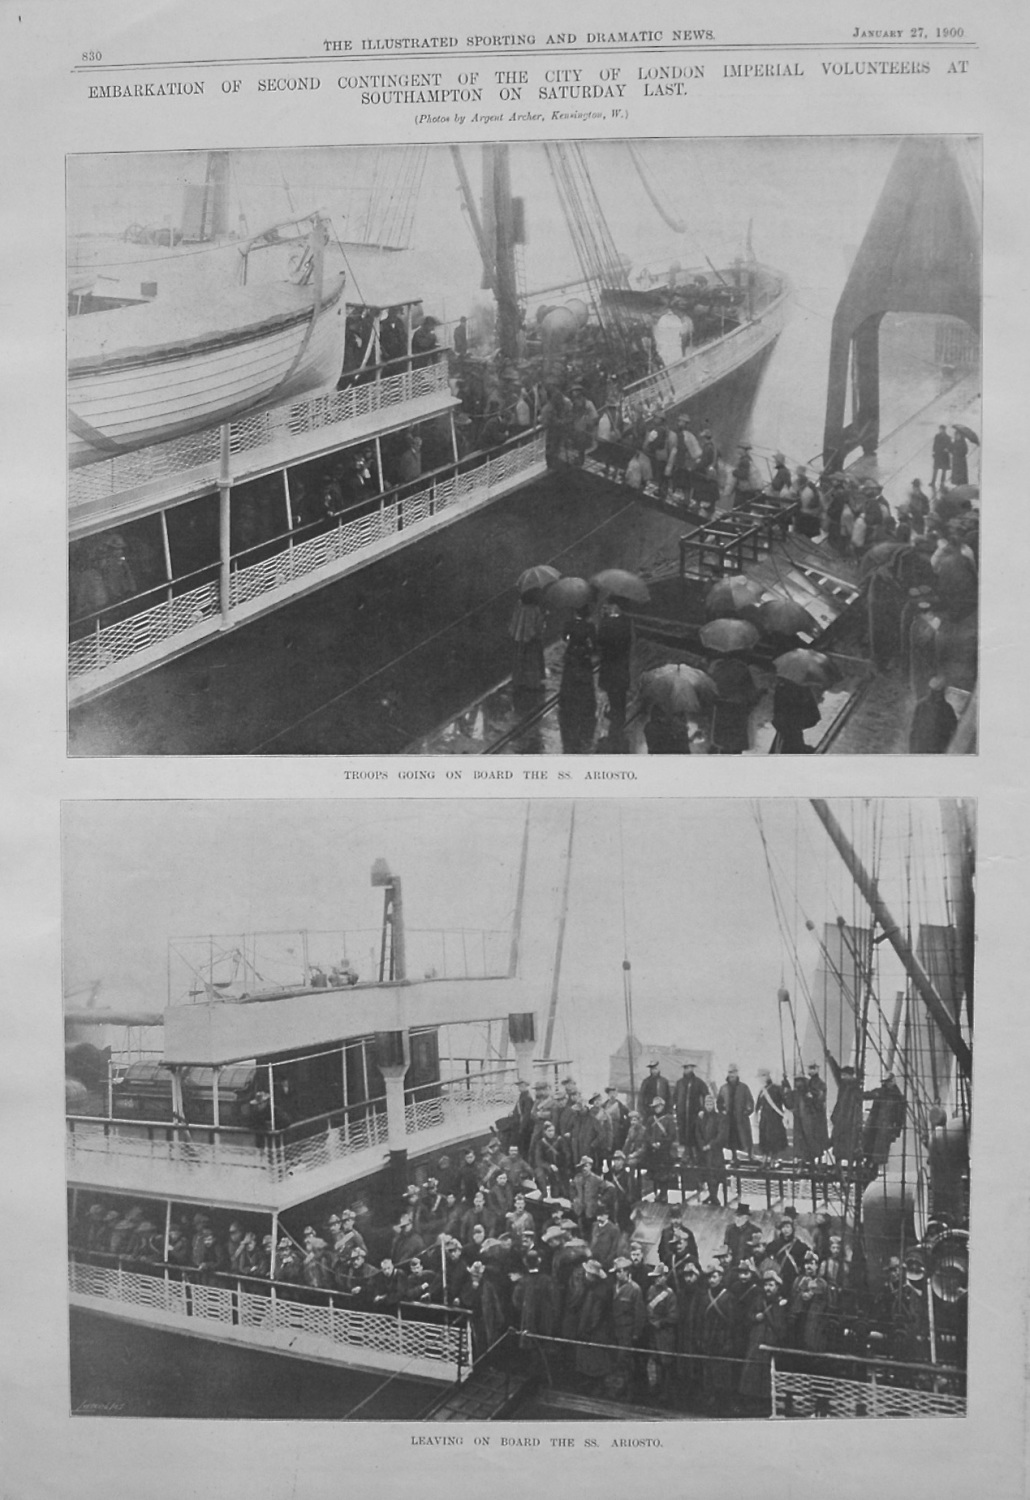 Embarkation of Second Contingent of the City of London Imperial Volunteers